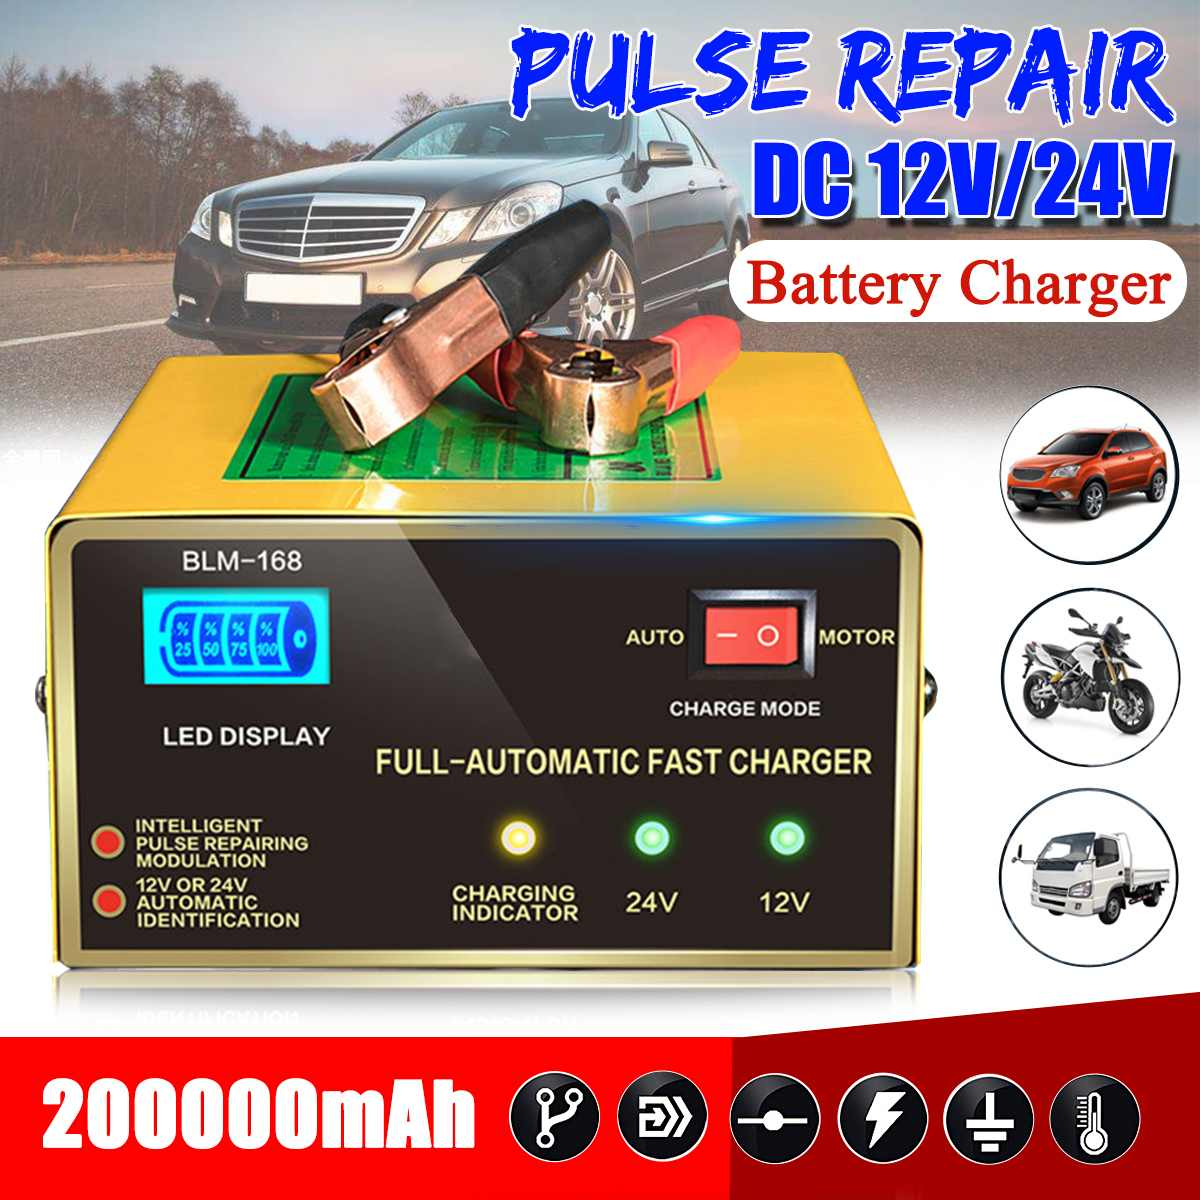 12V/24V 200000mAh Car Full Automatic Electric Lead Acid Battery Intelligent Charger Pulses Repair w/LCDFor Car Motorcycle12V/24V 200000mAh Car Full Automatic Electric Lead Acid Battery Intelligent Charger Pulses Repair w/LCDFor Car Motorcycle